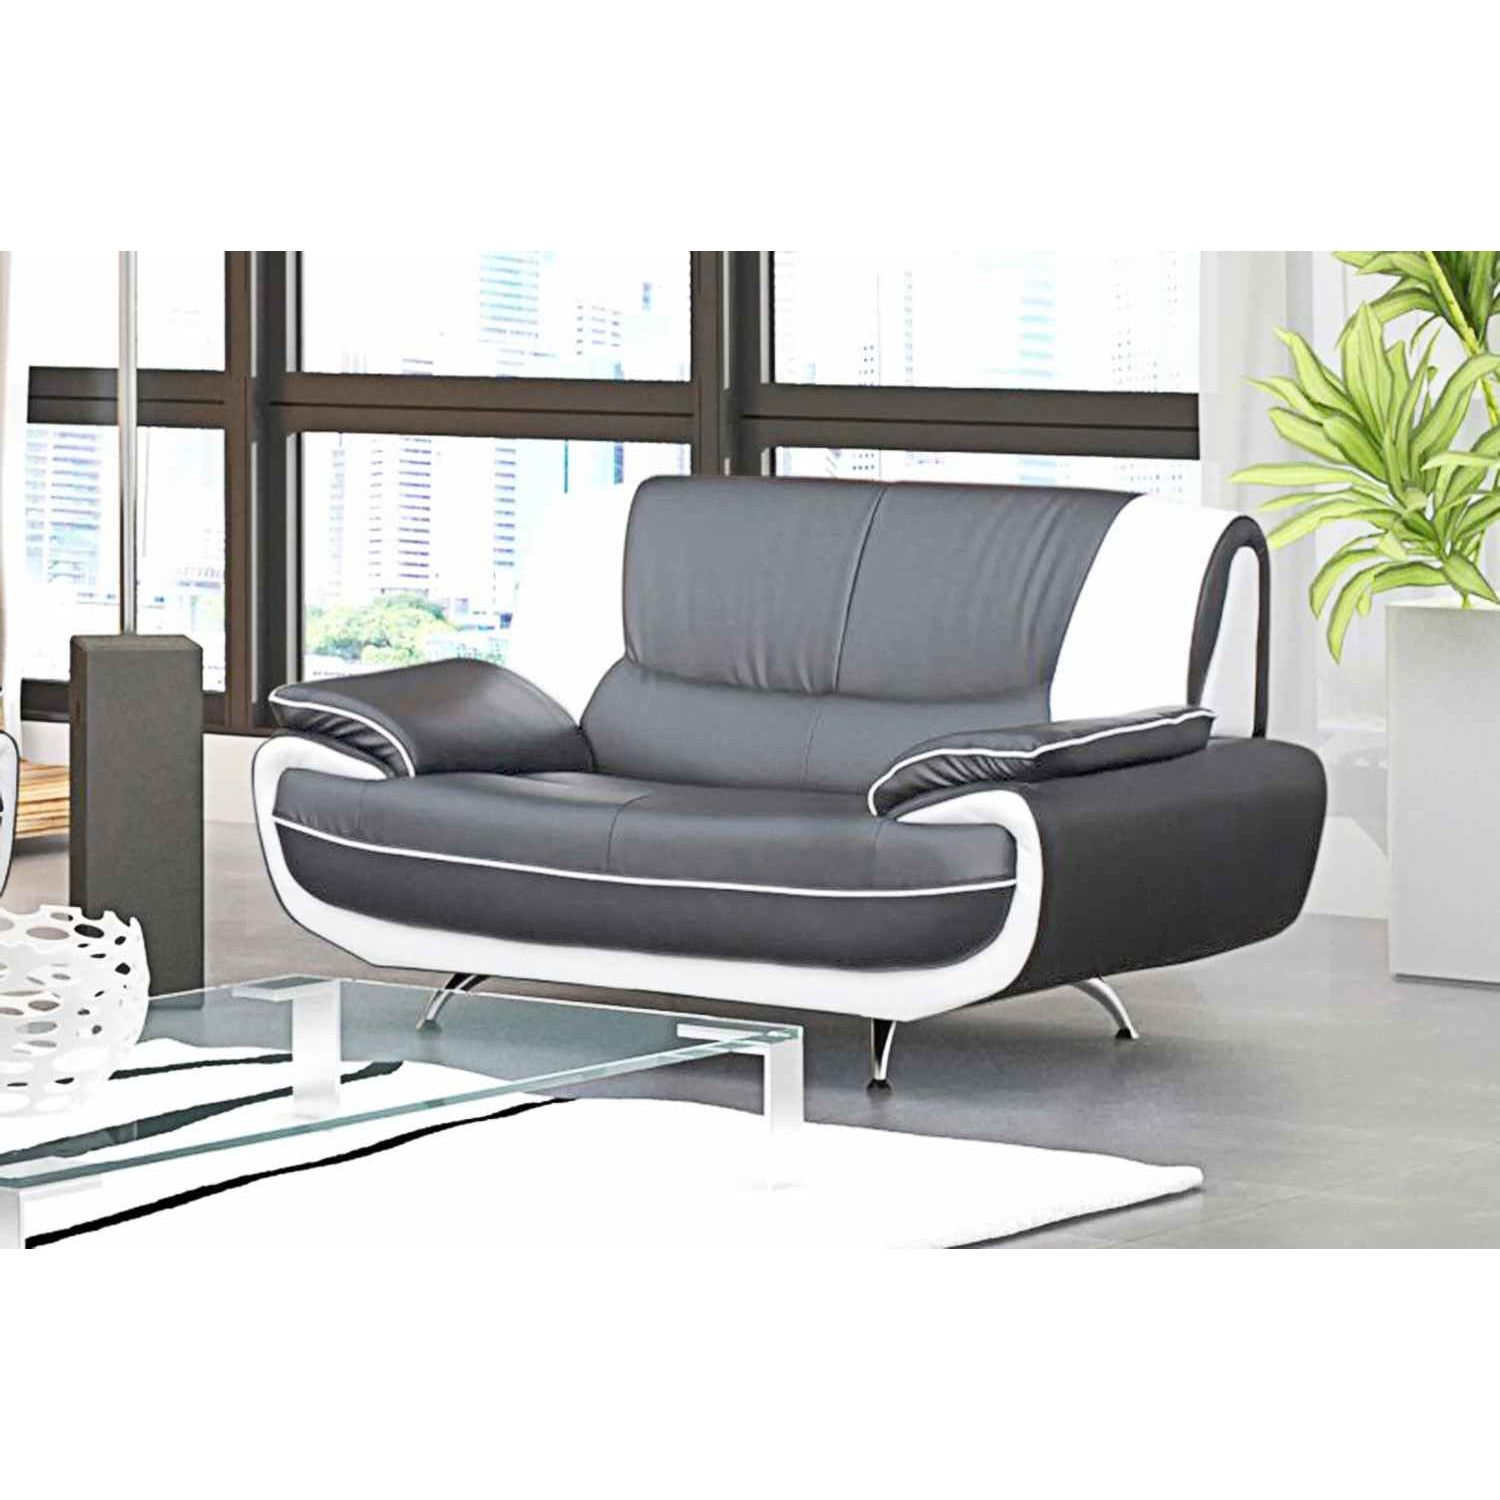 Deco in paris canape 2 places design gris et blanc marita marita 2pl gris b - Fauteuil 2 places design ...